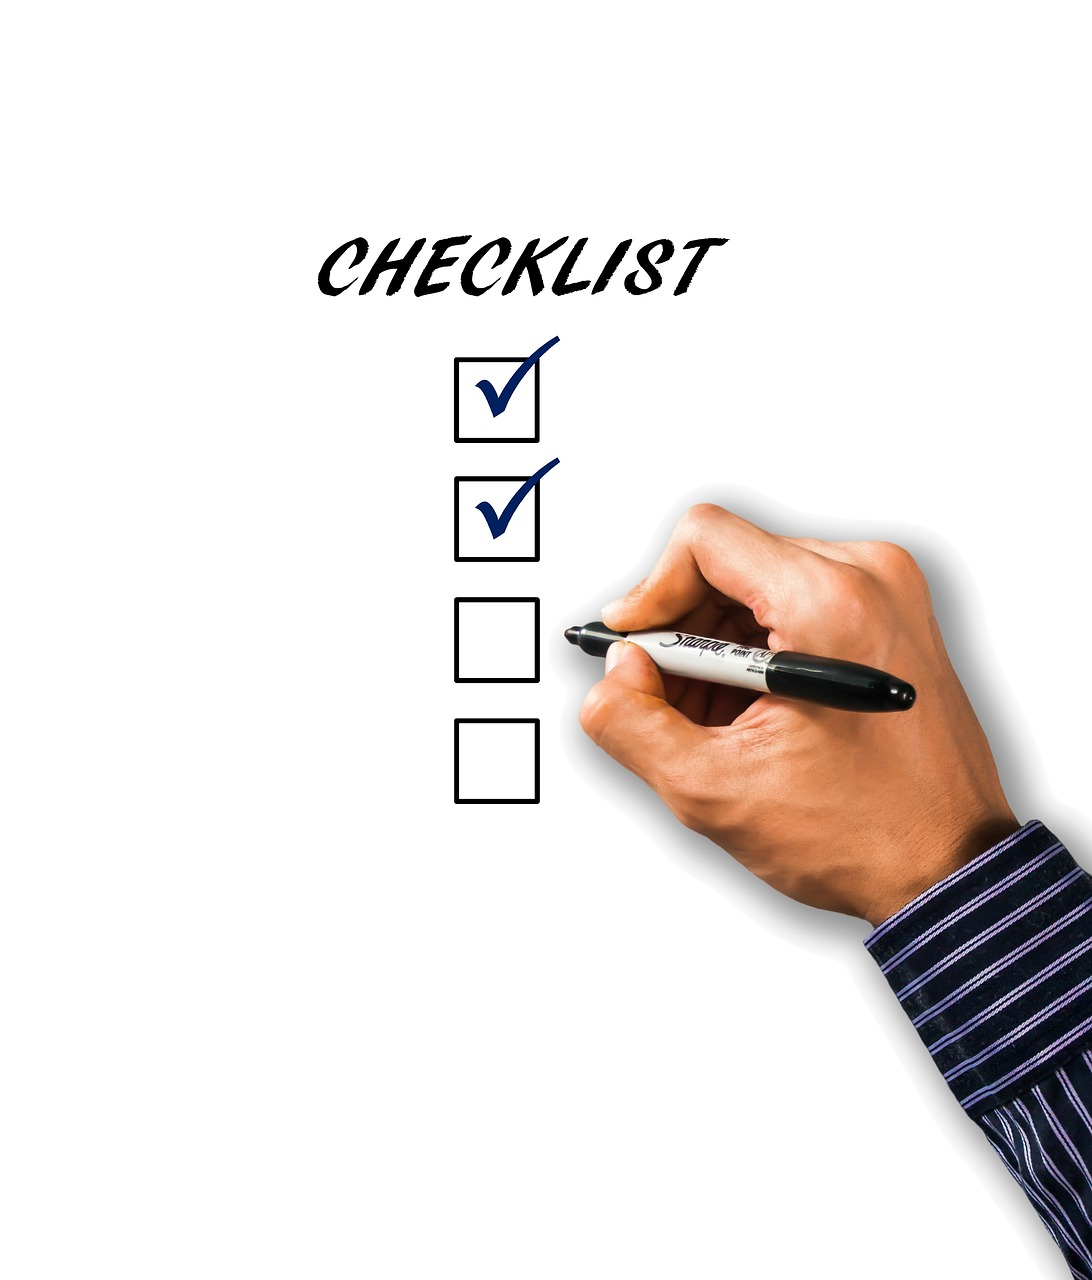 I-90 Application Checklist Helps You Renew or Replace Your Green Card